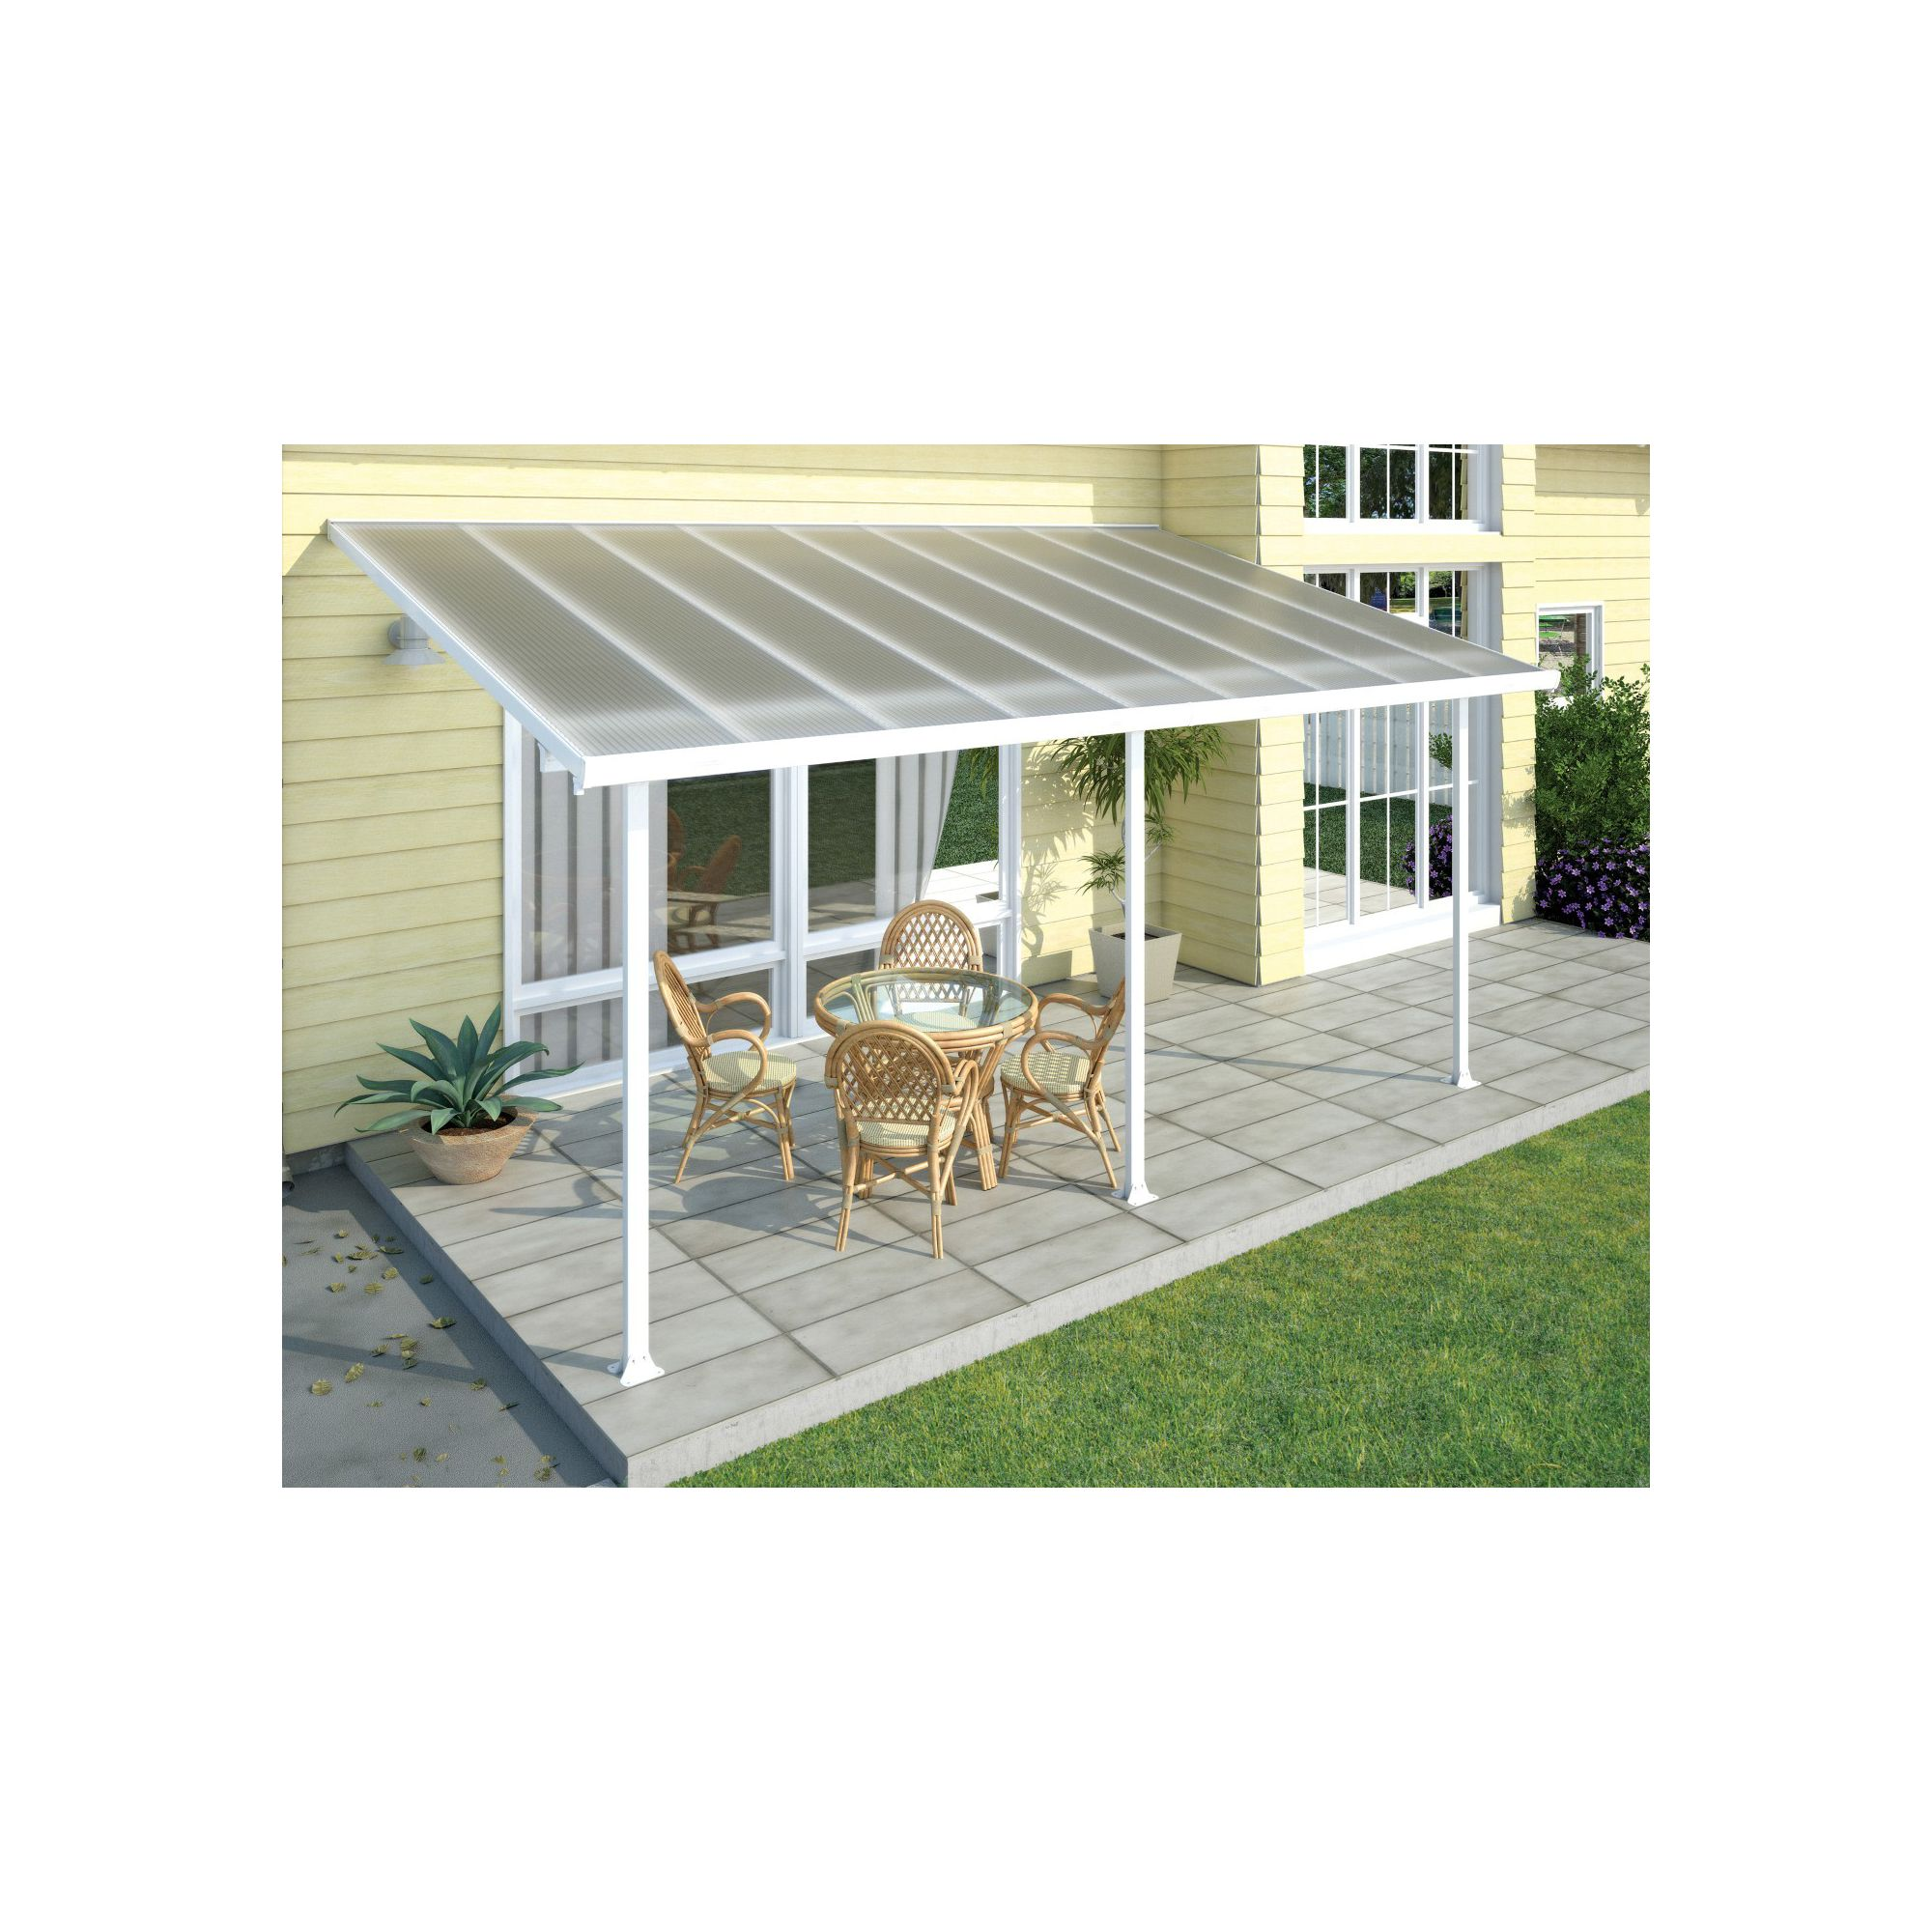 FERIA LEAN TO CARPORT AND PATIO COVER 4X10.31 WHITE at Tesco Direct